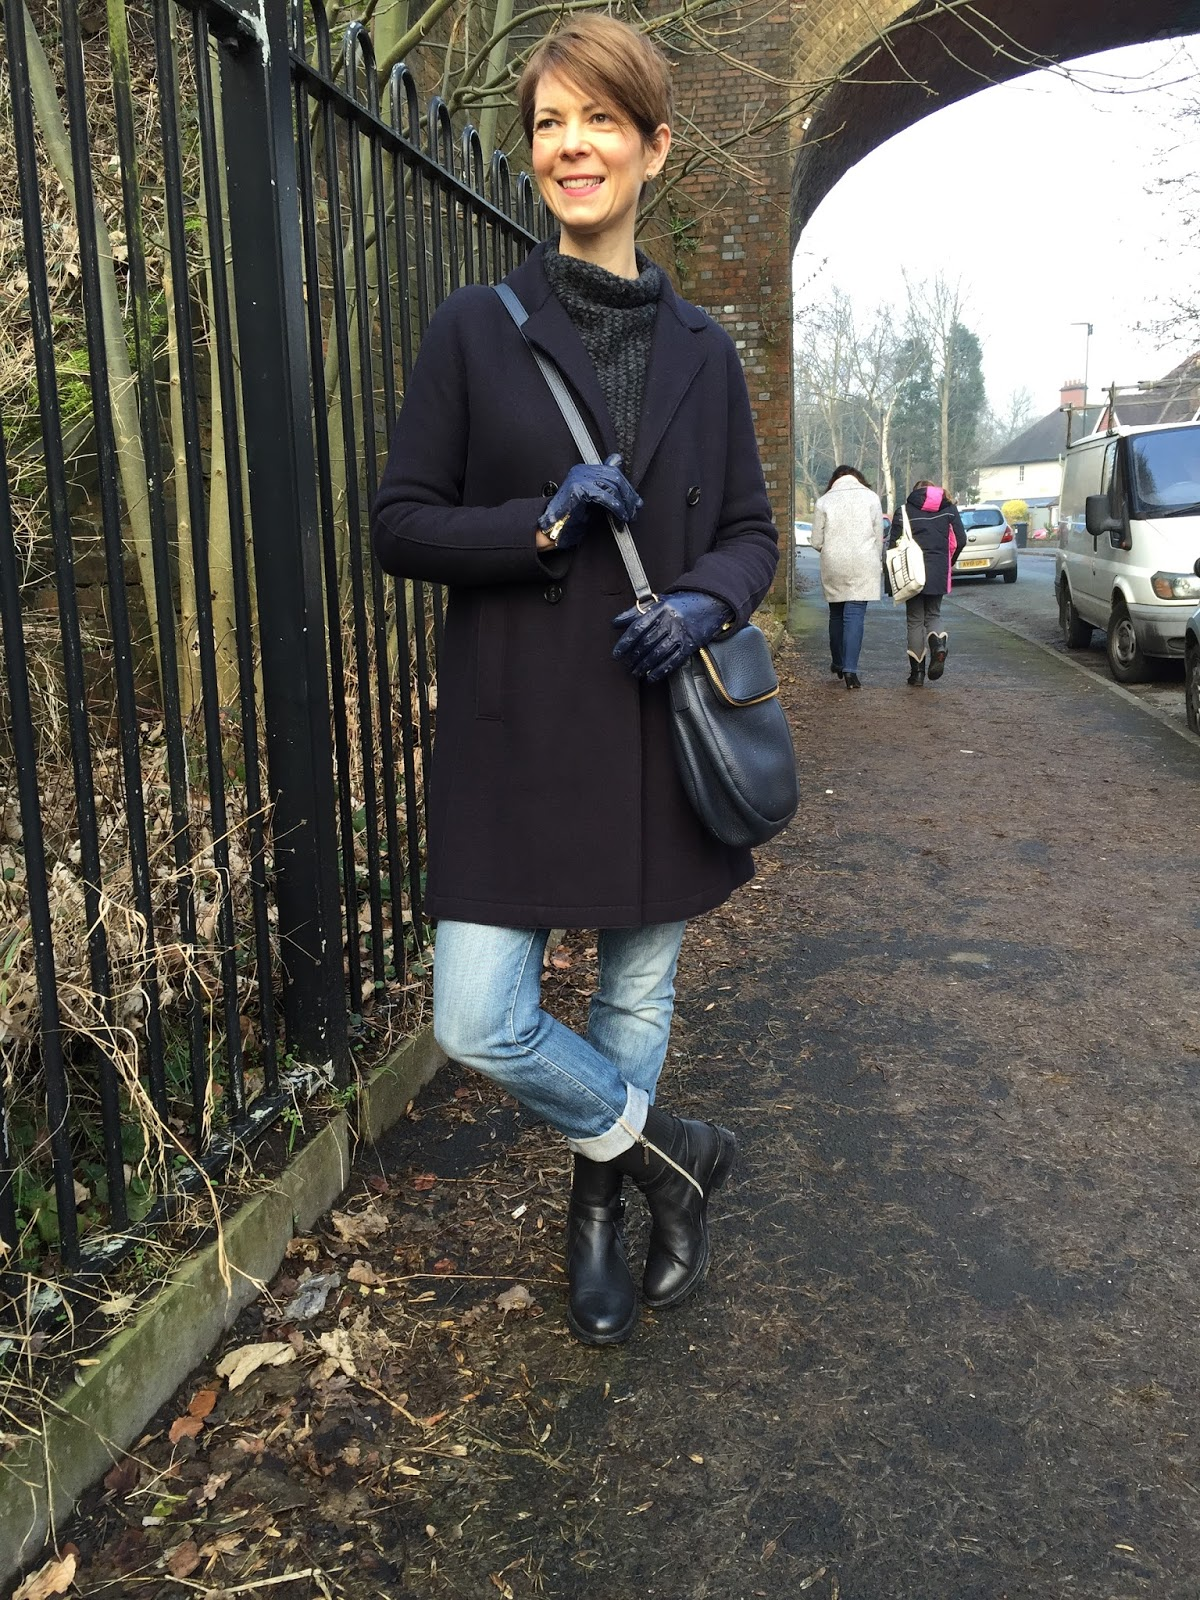 A Quick OOTD – The Jigsaw Coat in Action